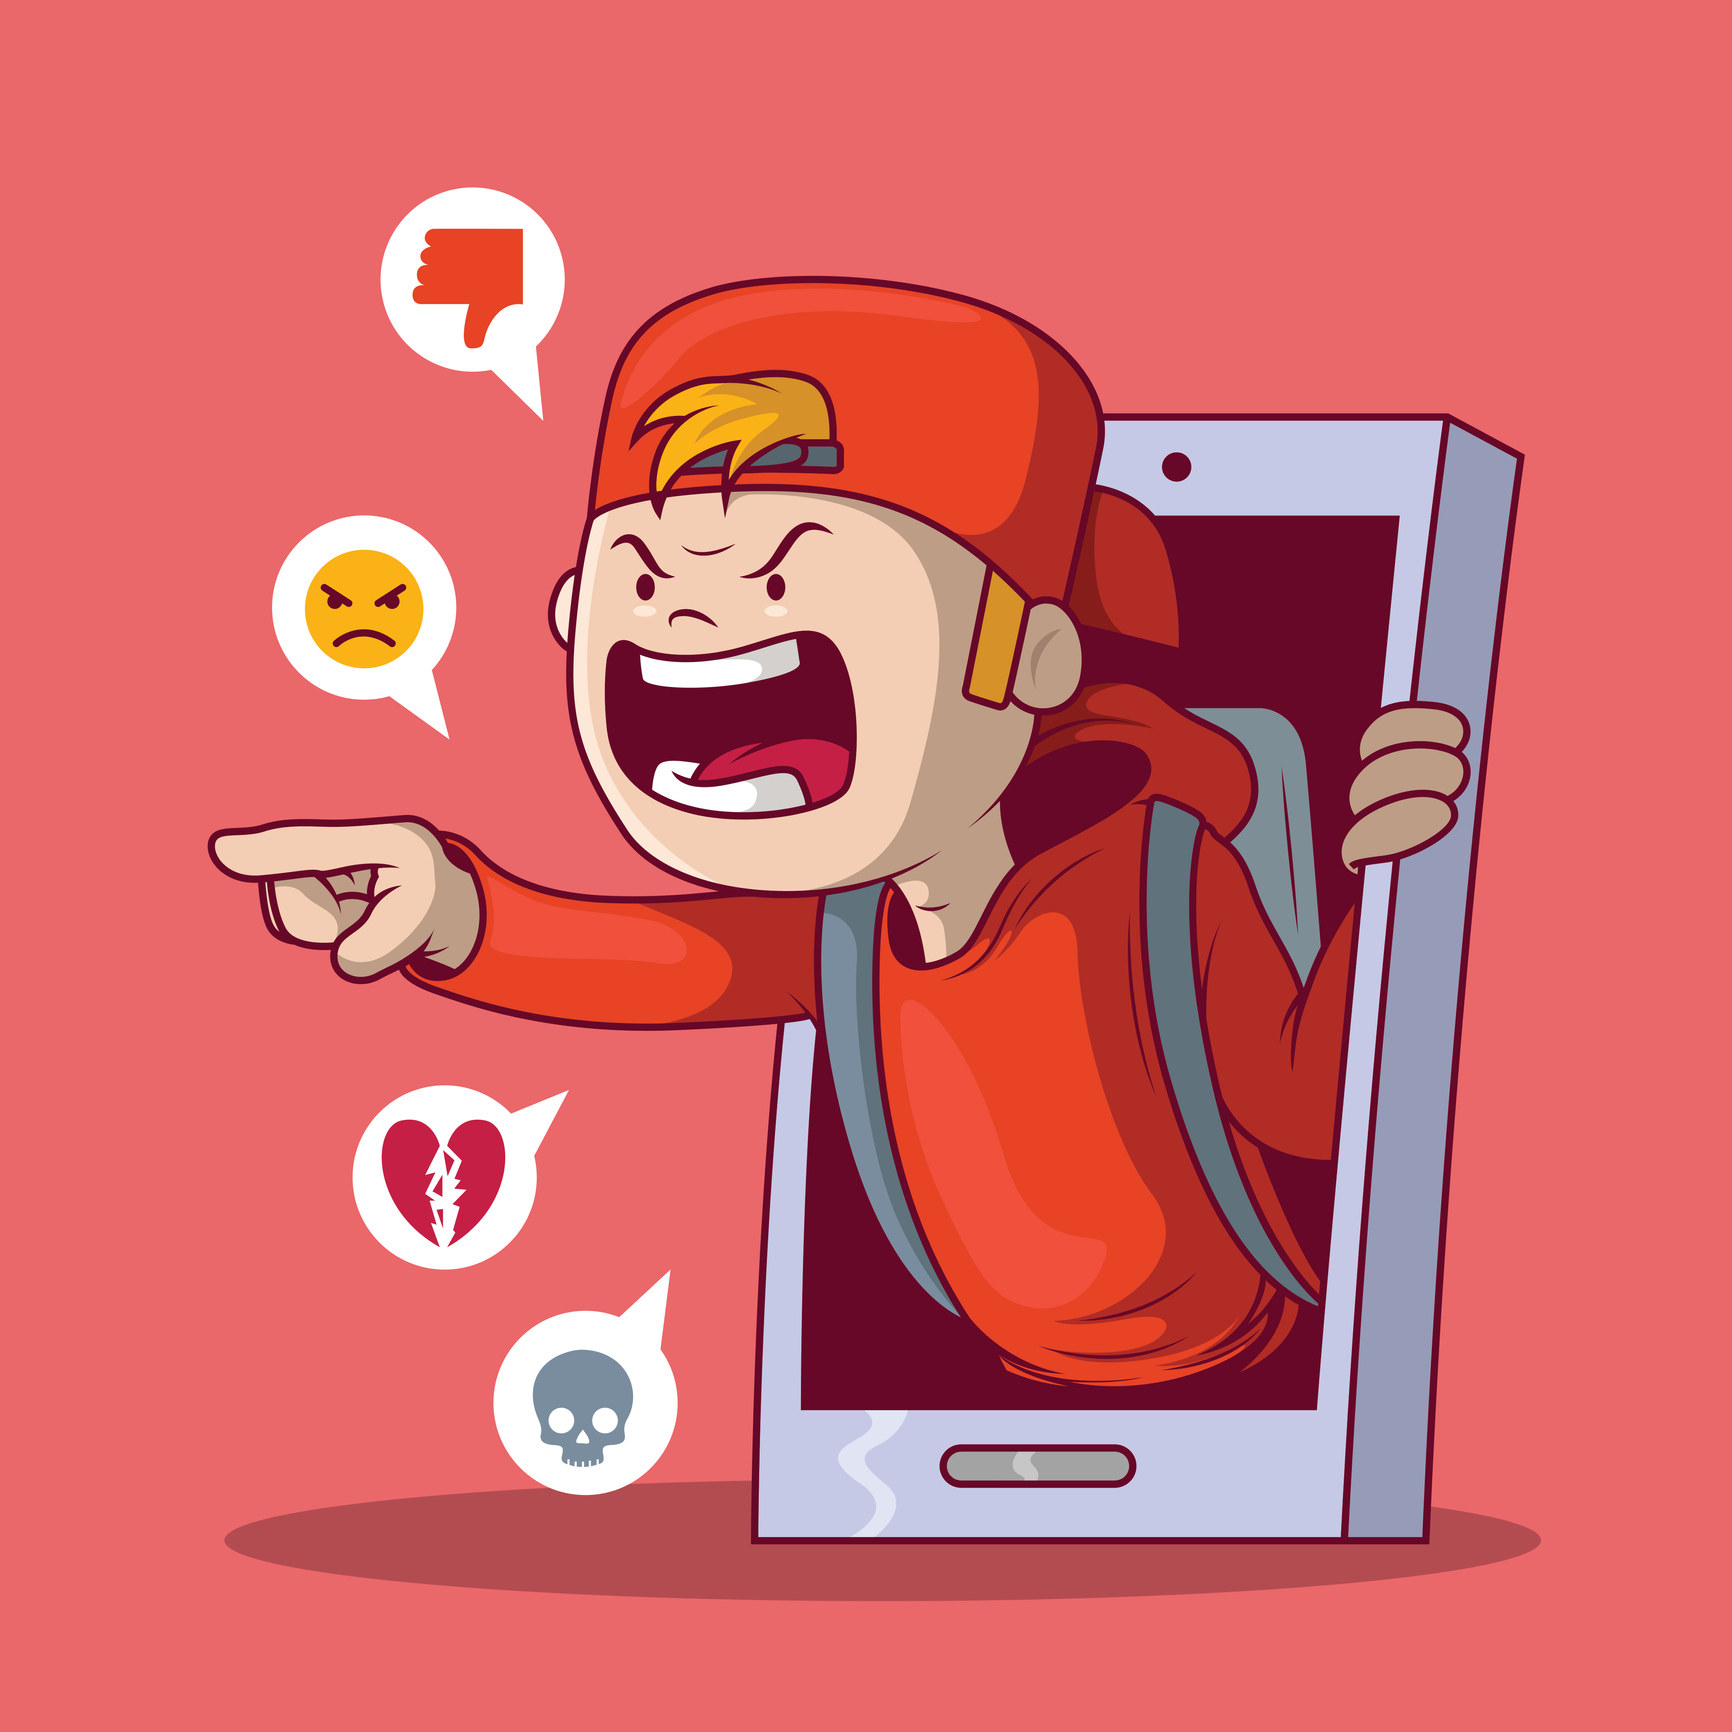 Stock photo of a cartoon boy in a red cap and hoodie coming through a smart phone to troll someone.